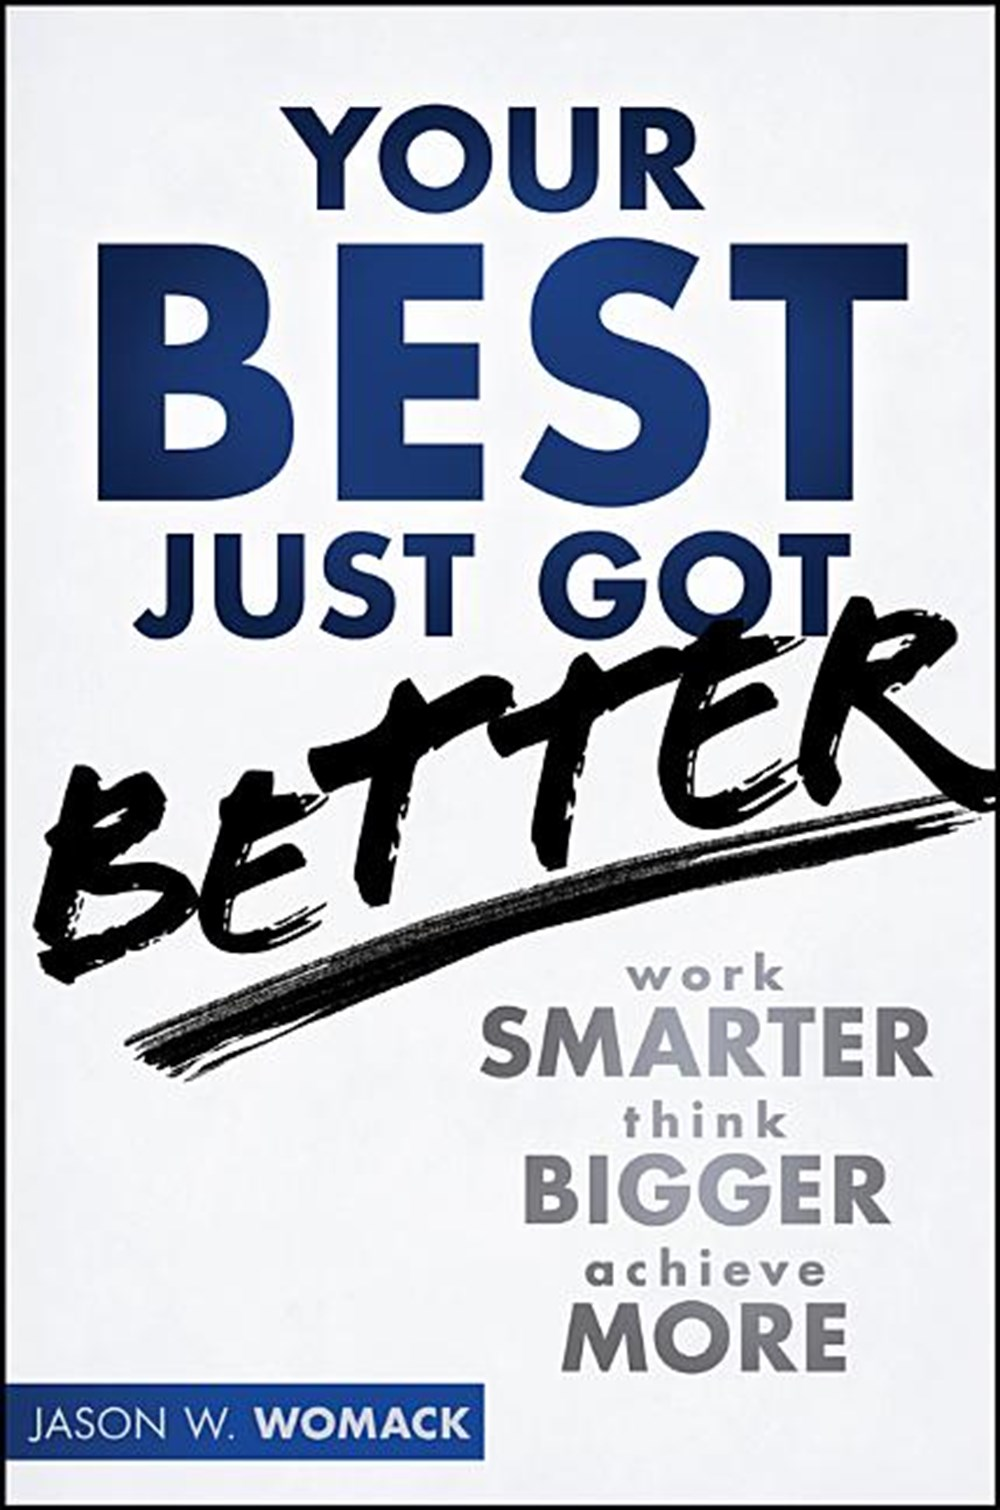 Your Best Just Got Better Work Smarter, Think Bigger, Make More